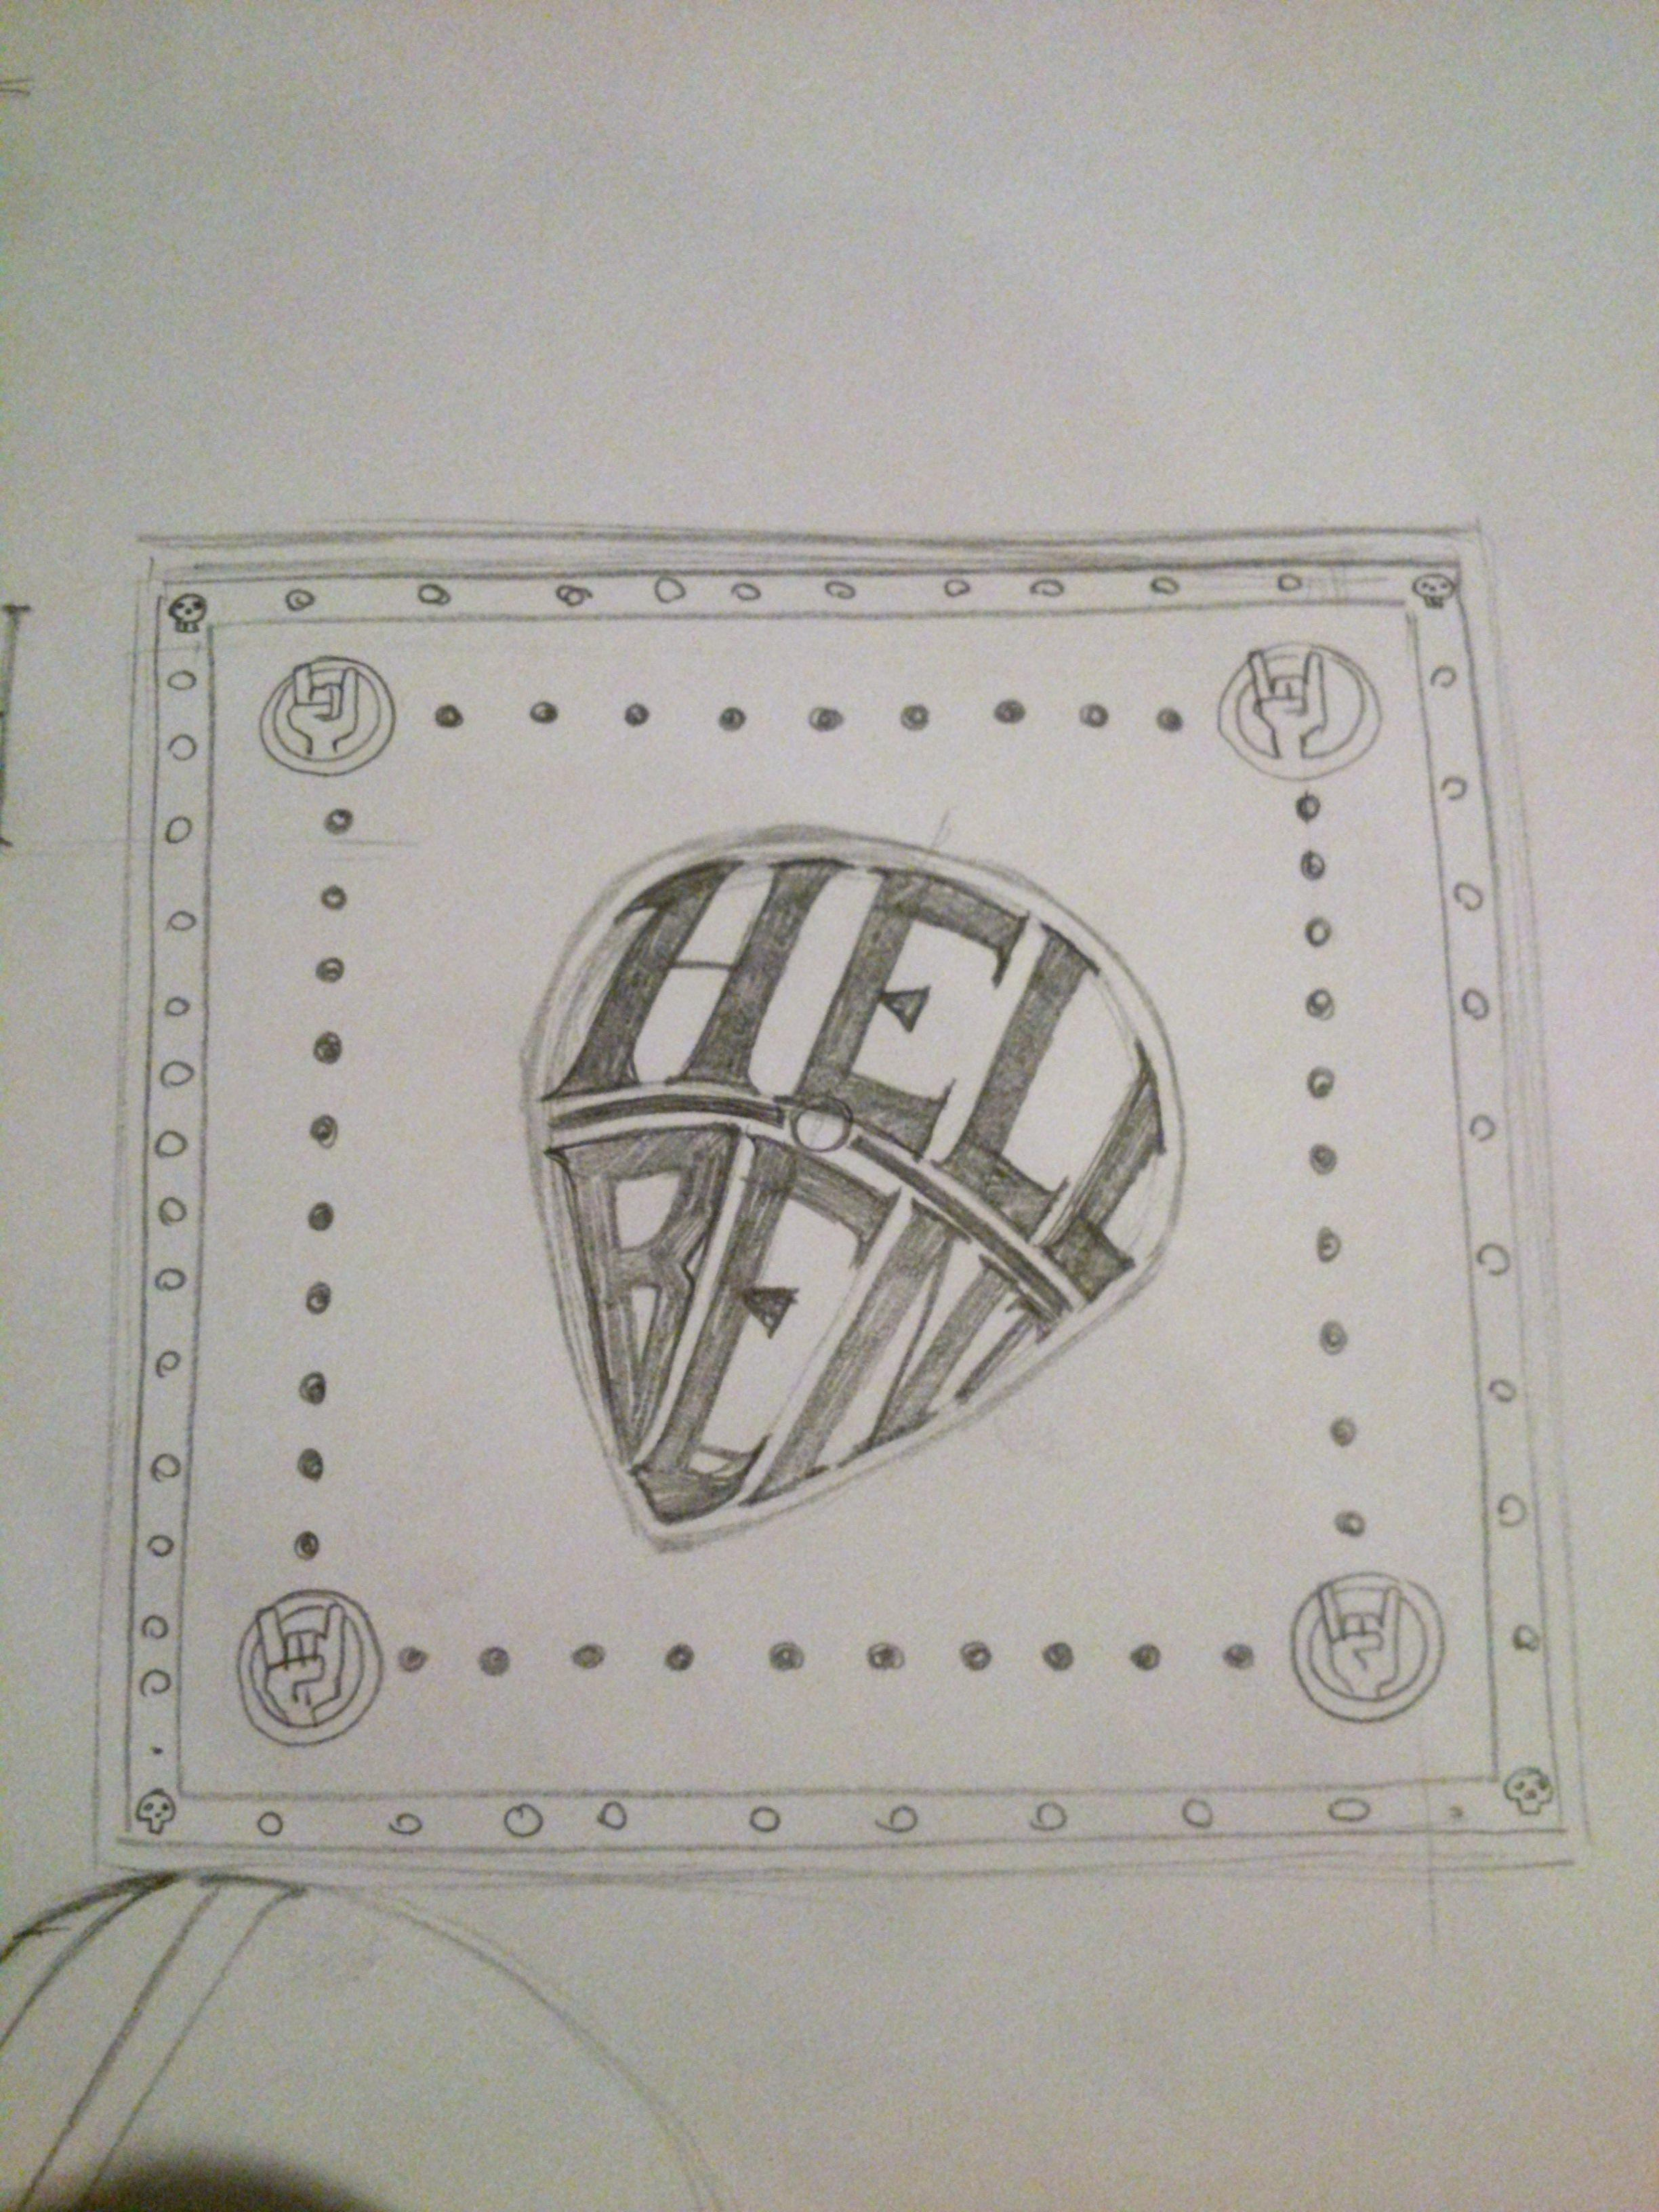 HELL BENT - GUITAR STRINGS - image 7 - student project